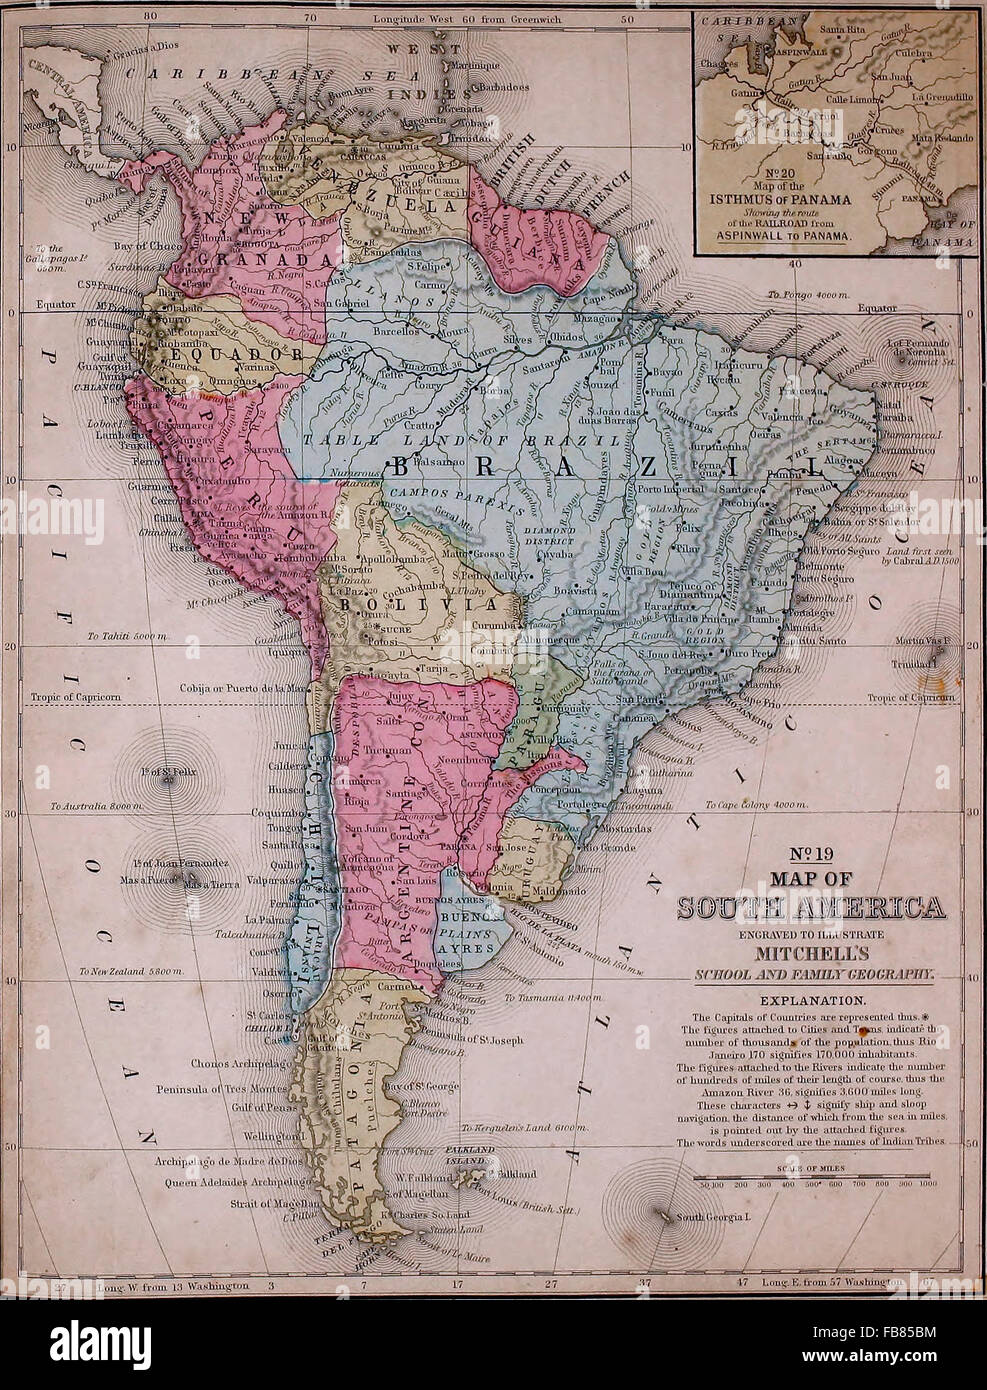 Map of South America circa 1861 Stock Photo Royalty Free Image